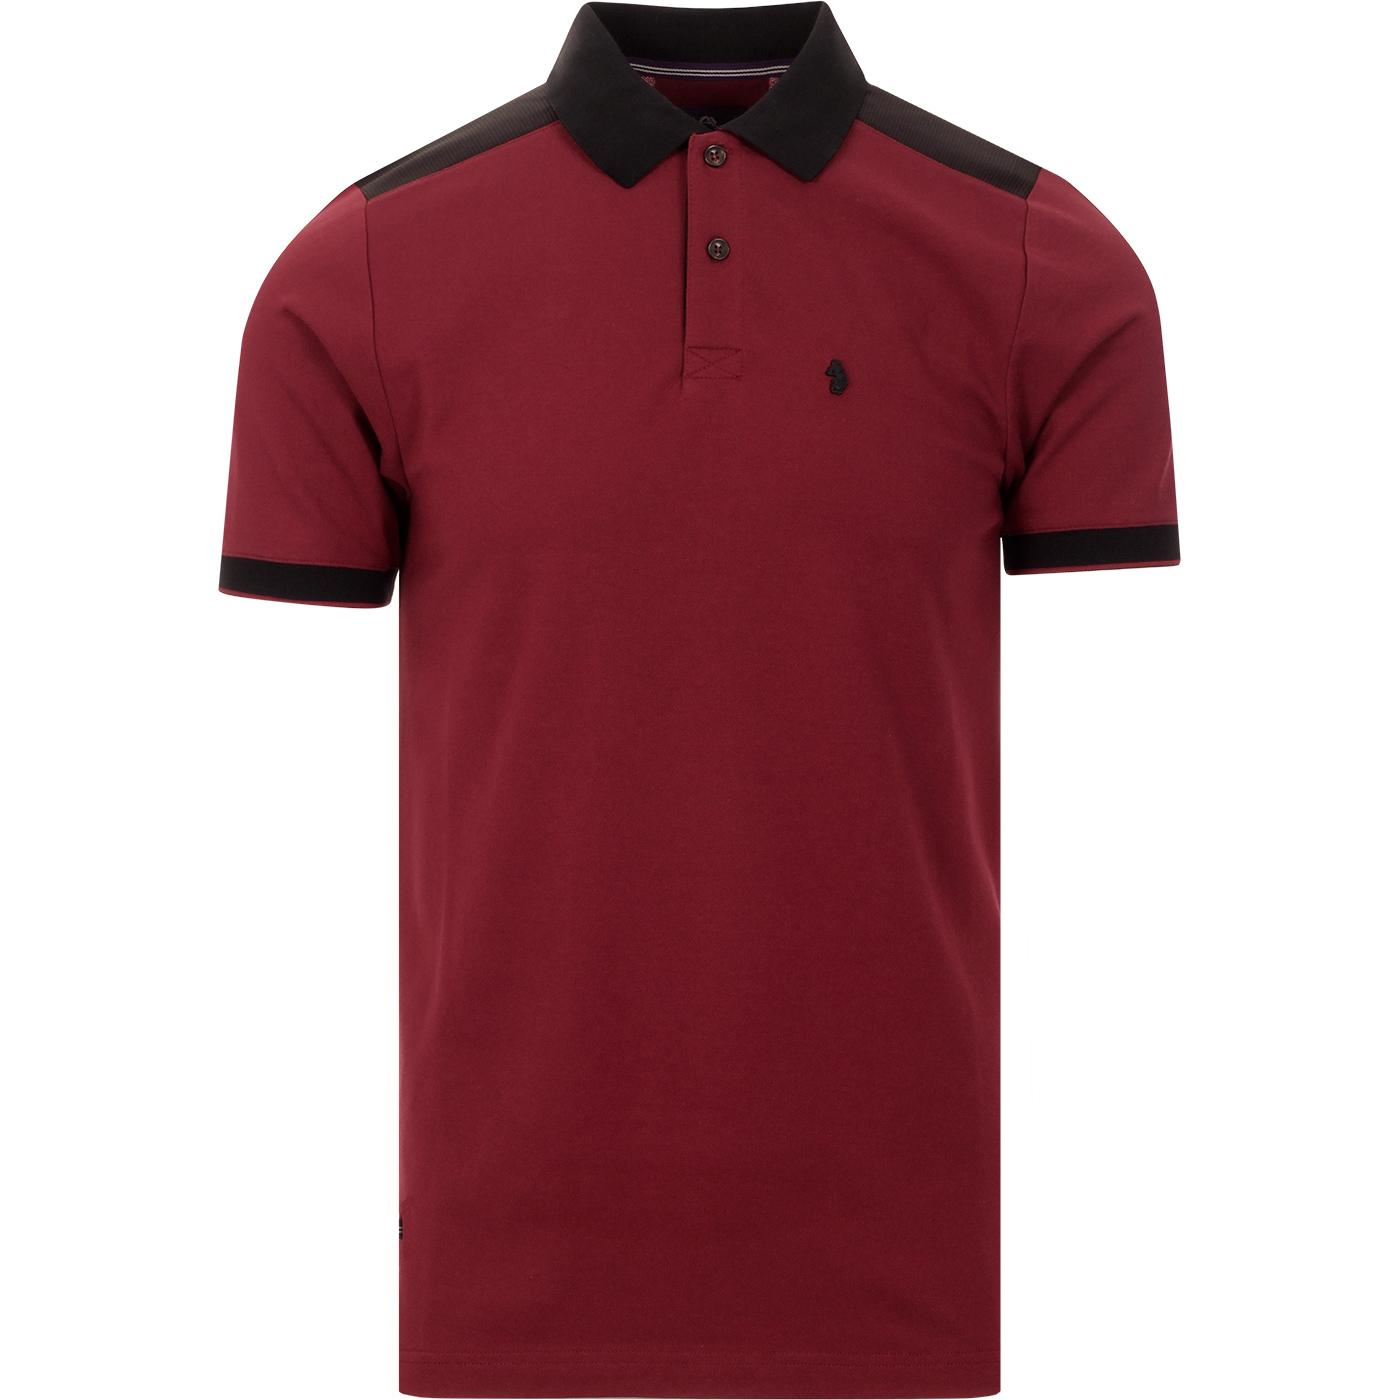 Newplant LUKE Jacquard Shoulder Panel Polo (Ruby)